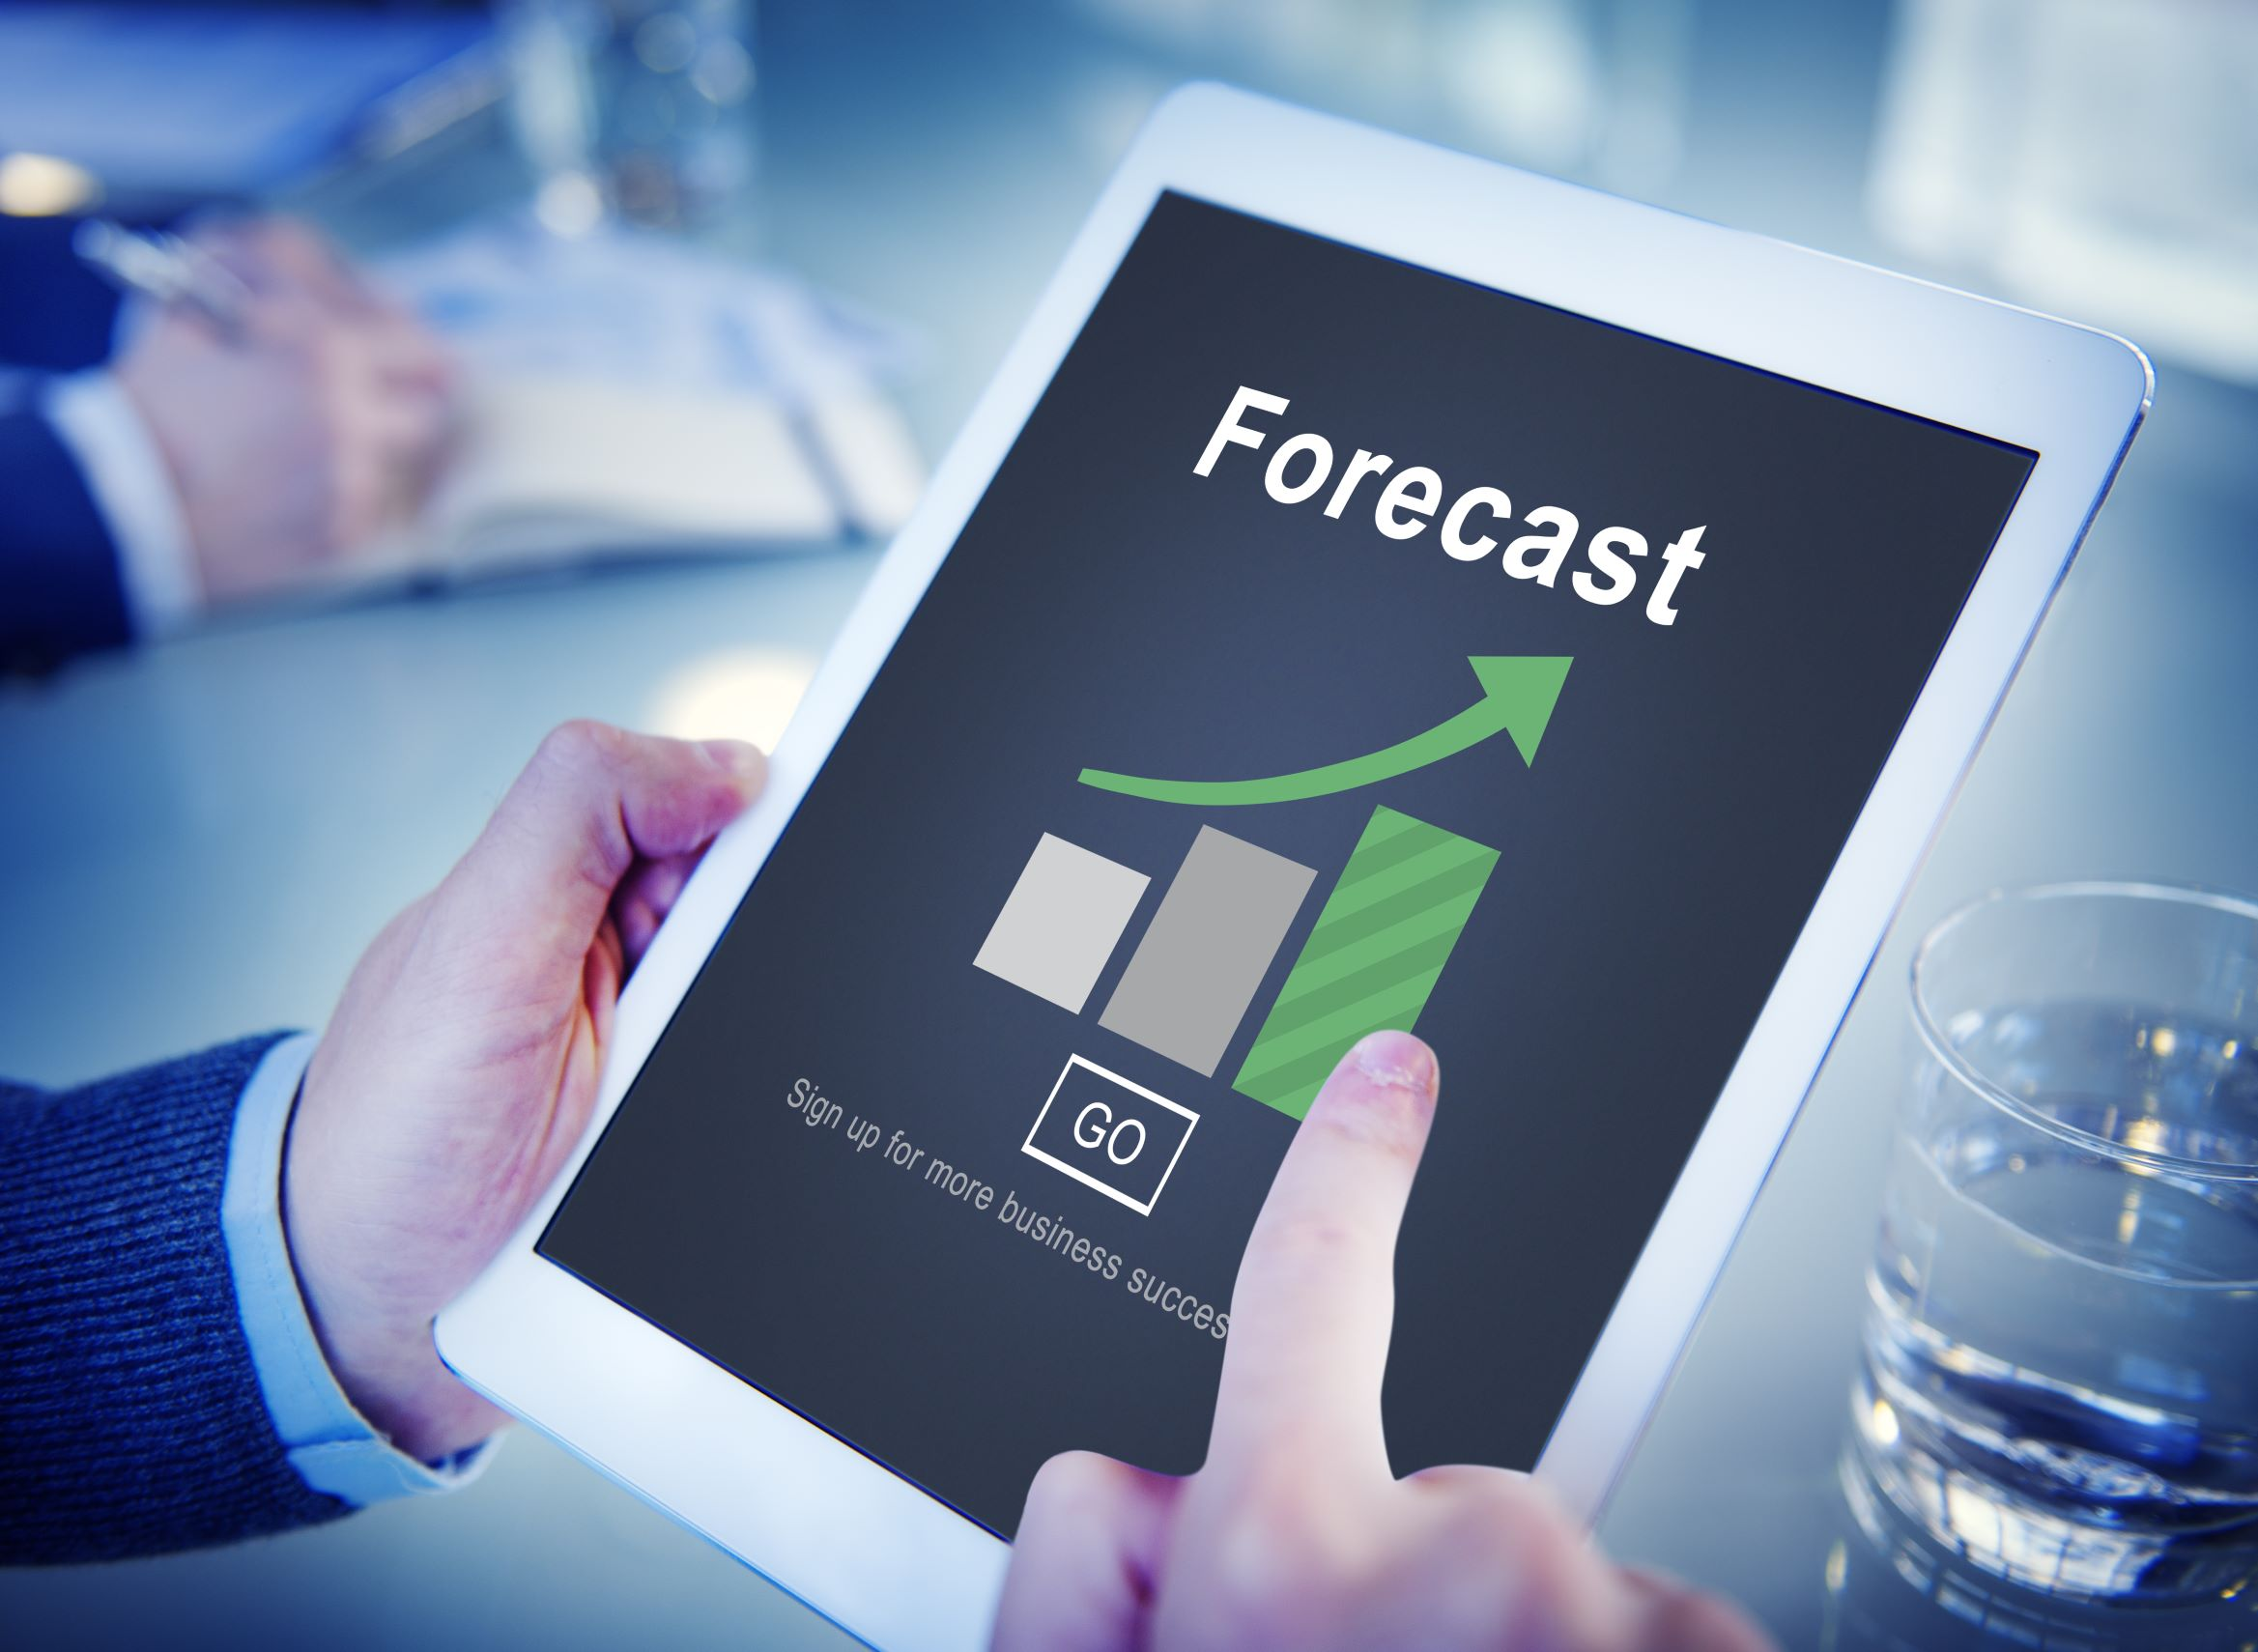 Tablet with forecast on it